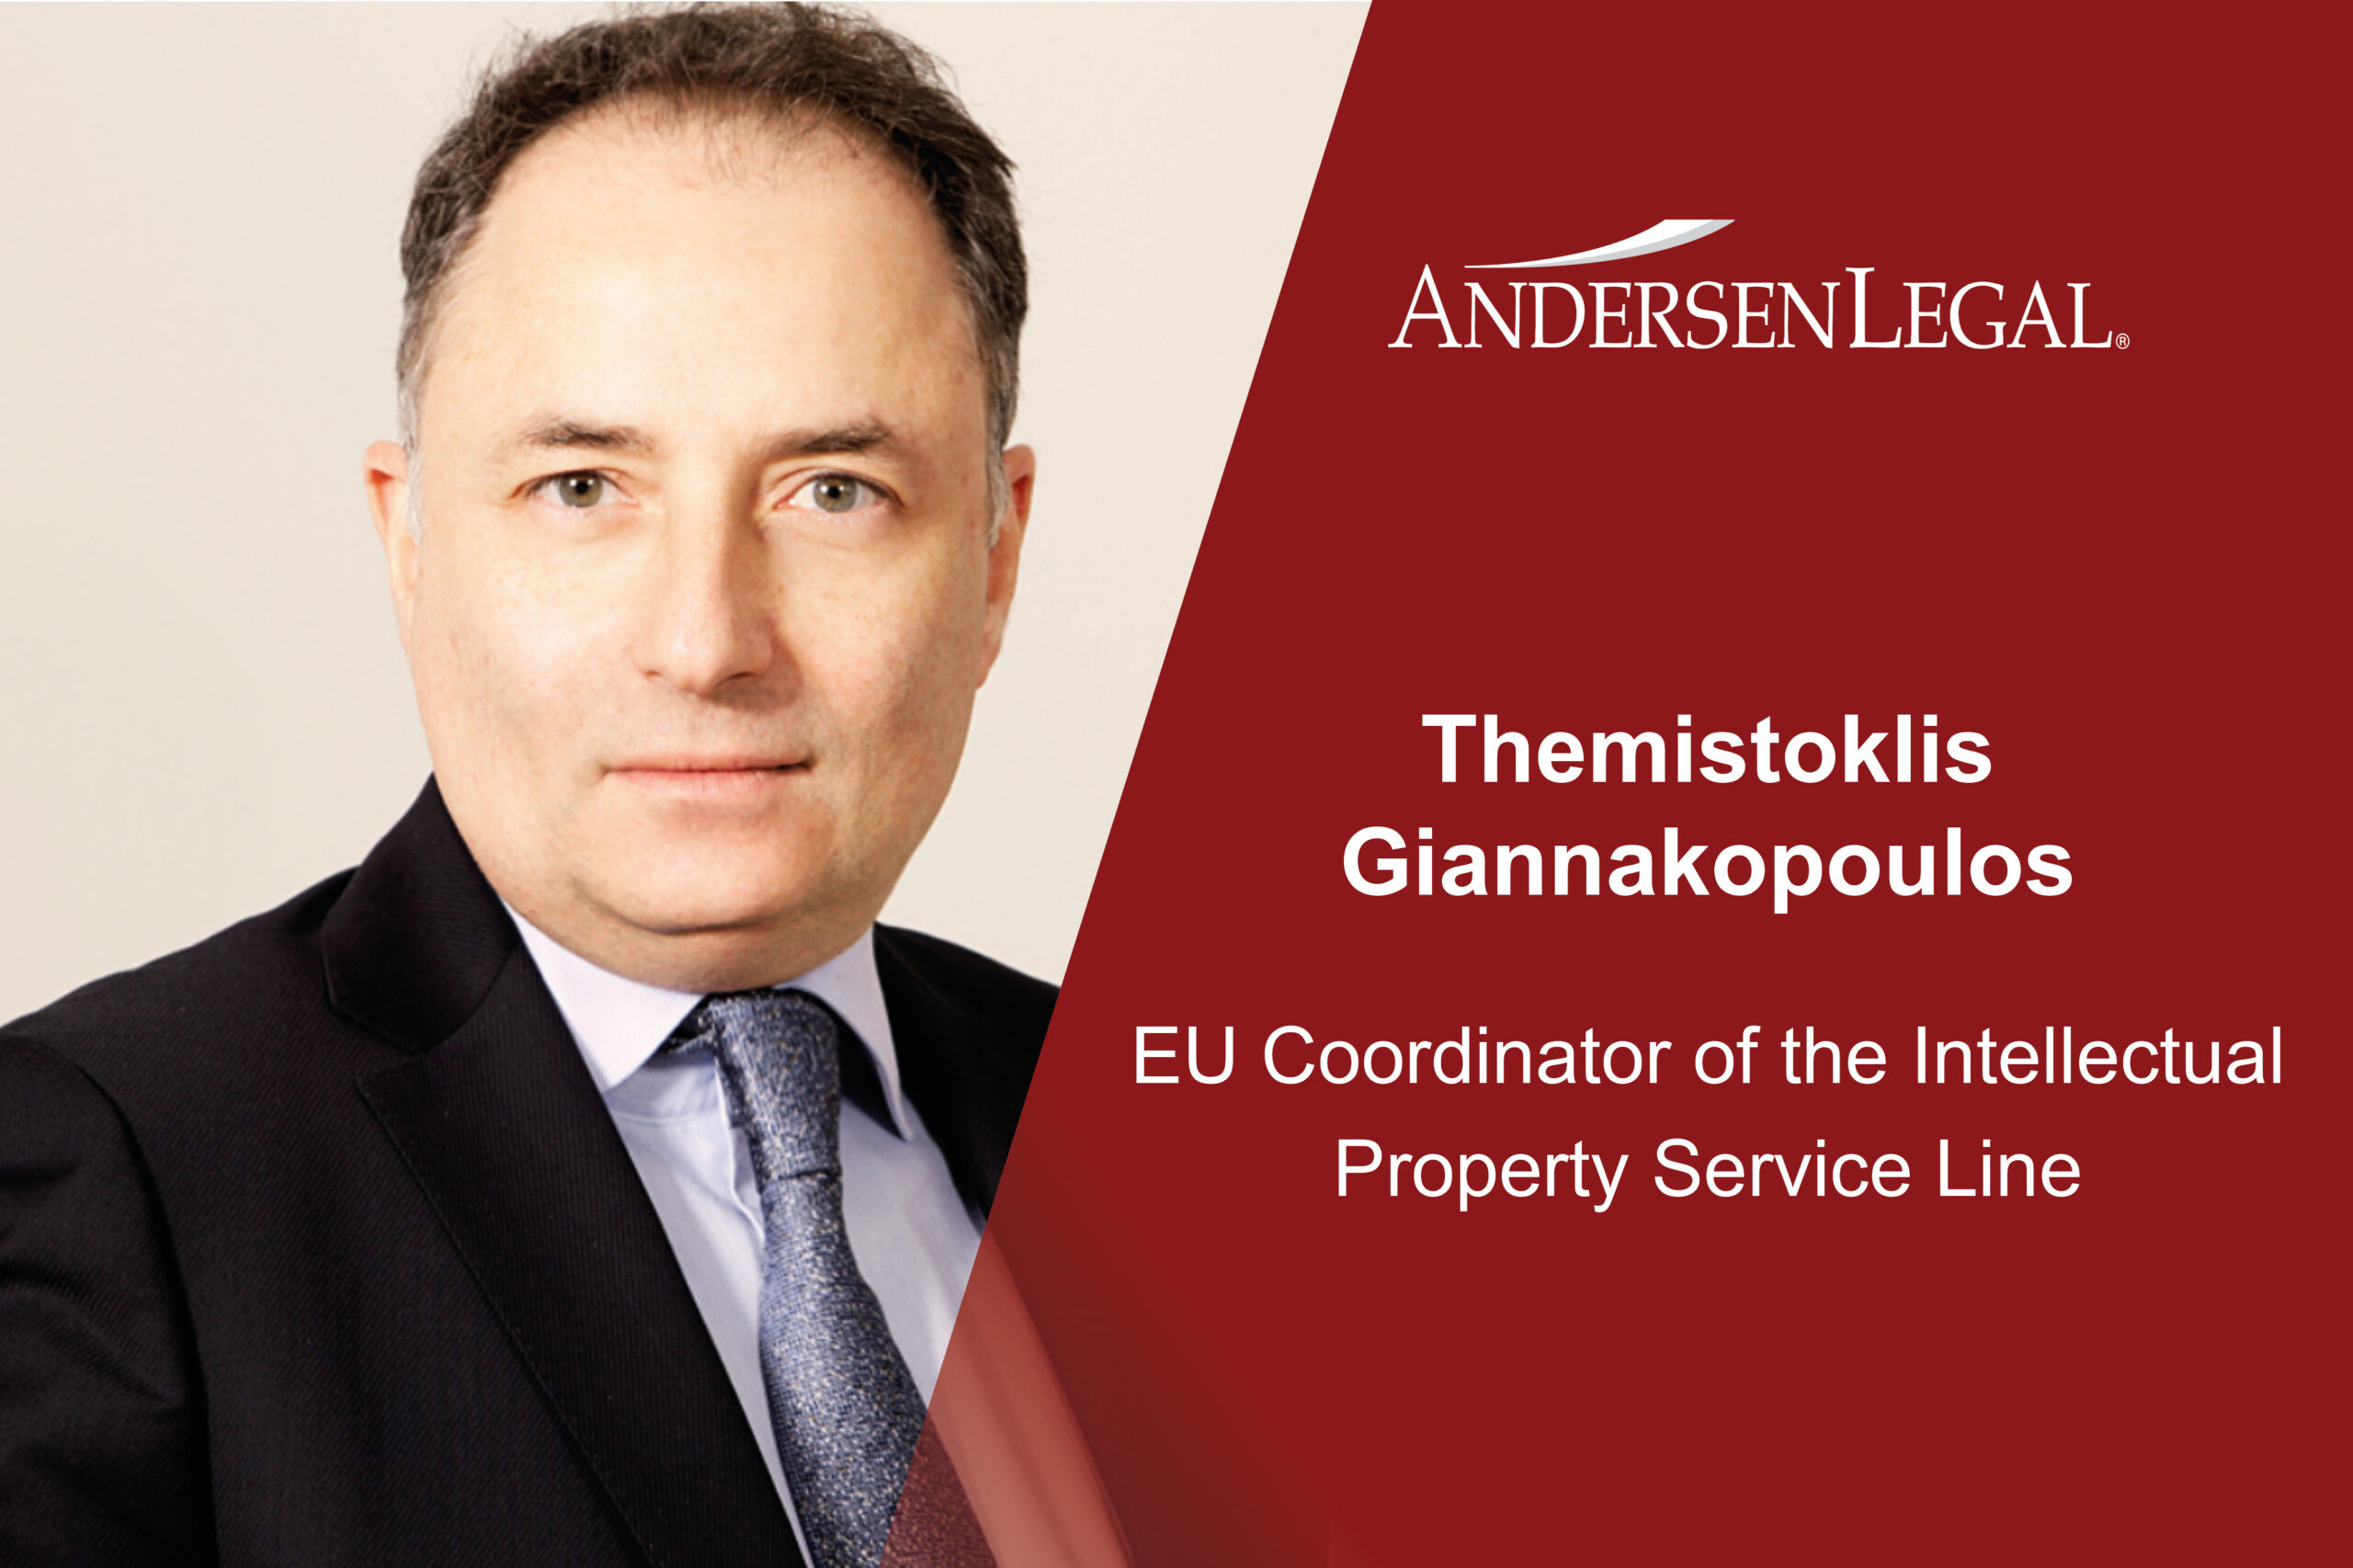 Themistoklis Giannakopoulos: EU Coordinator of the Intellectual Property Service Line